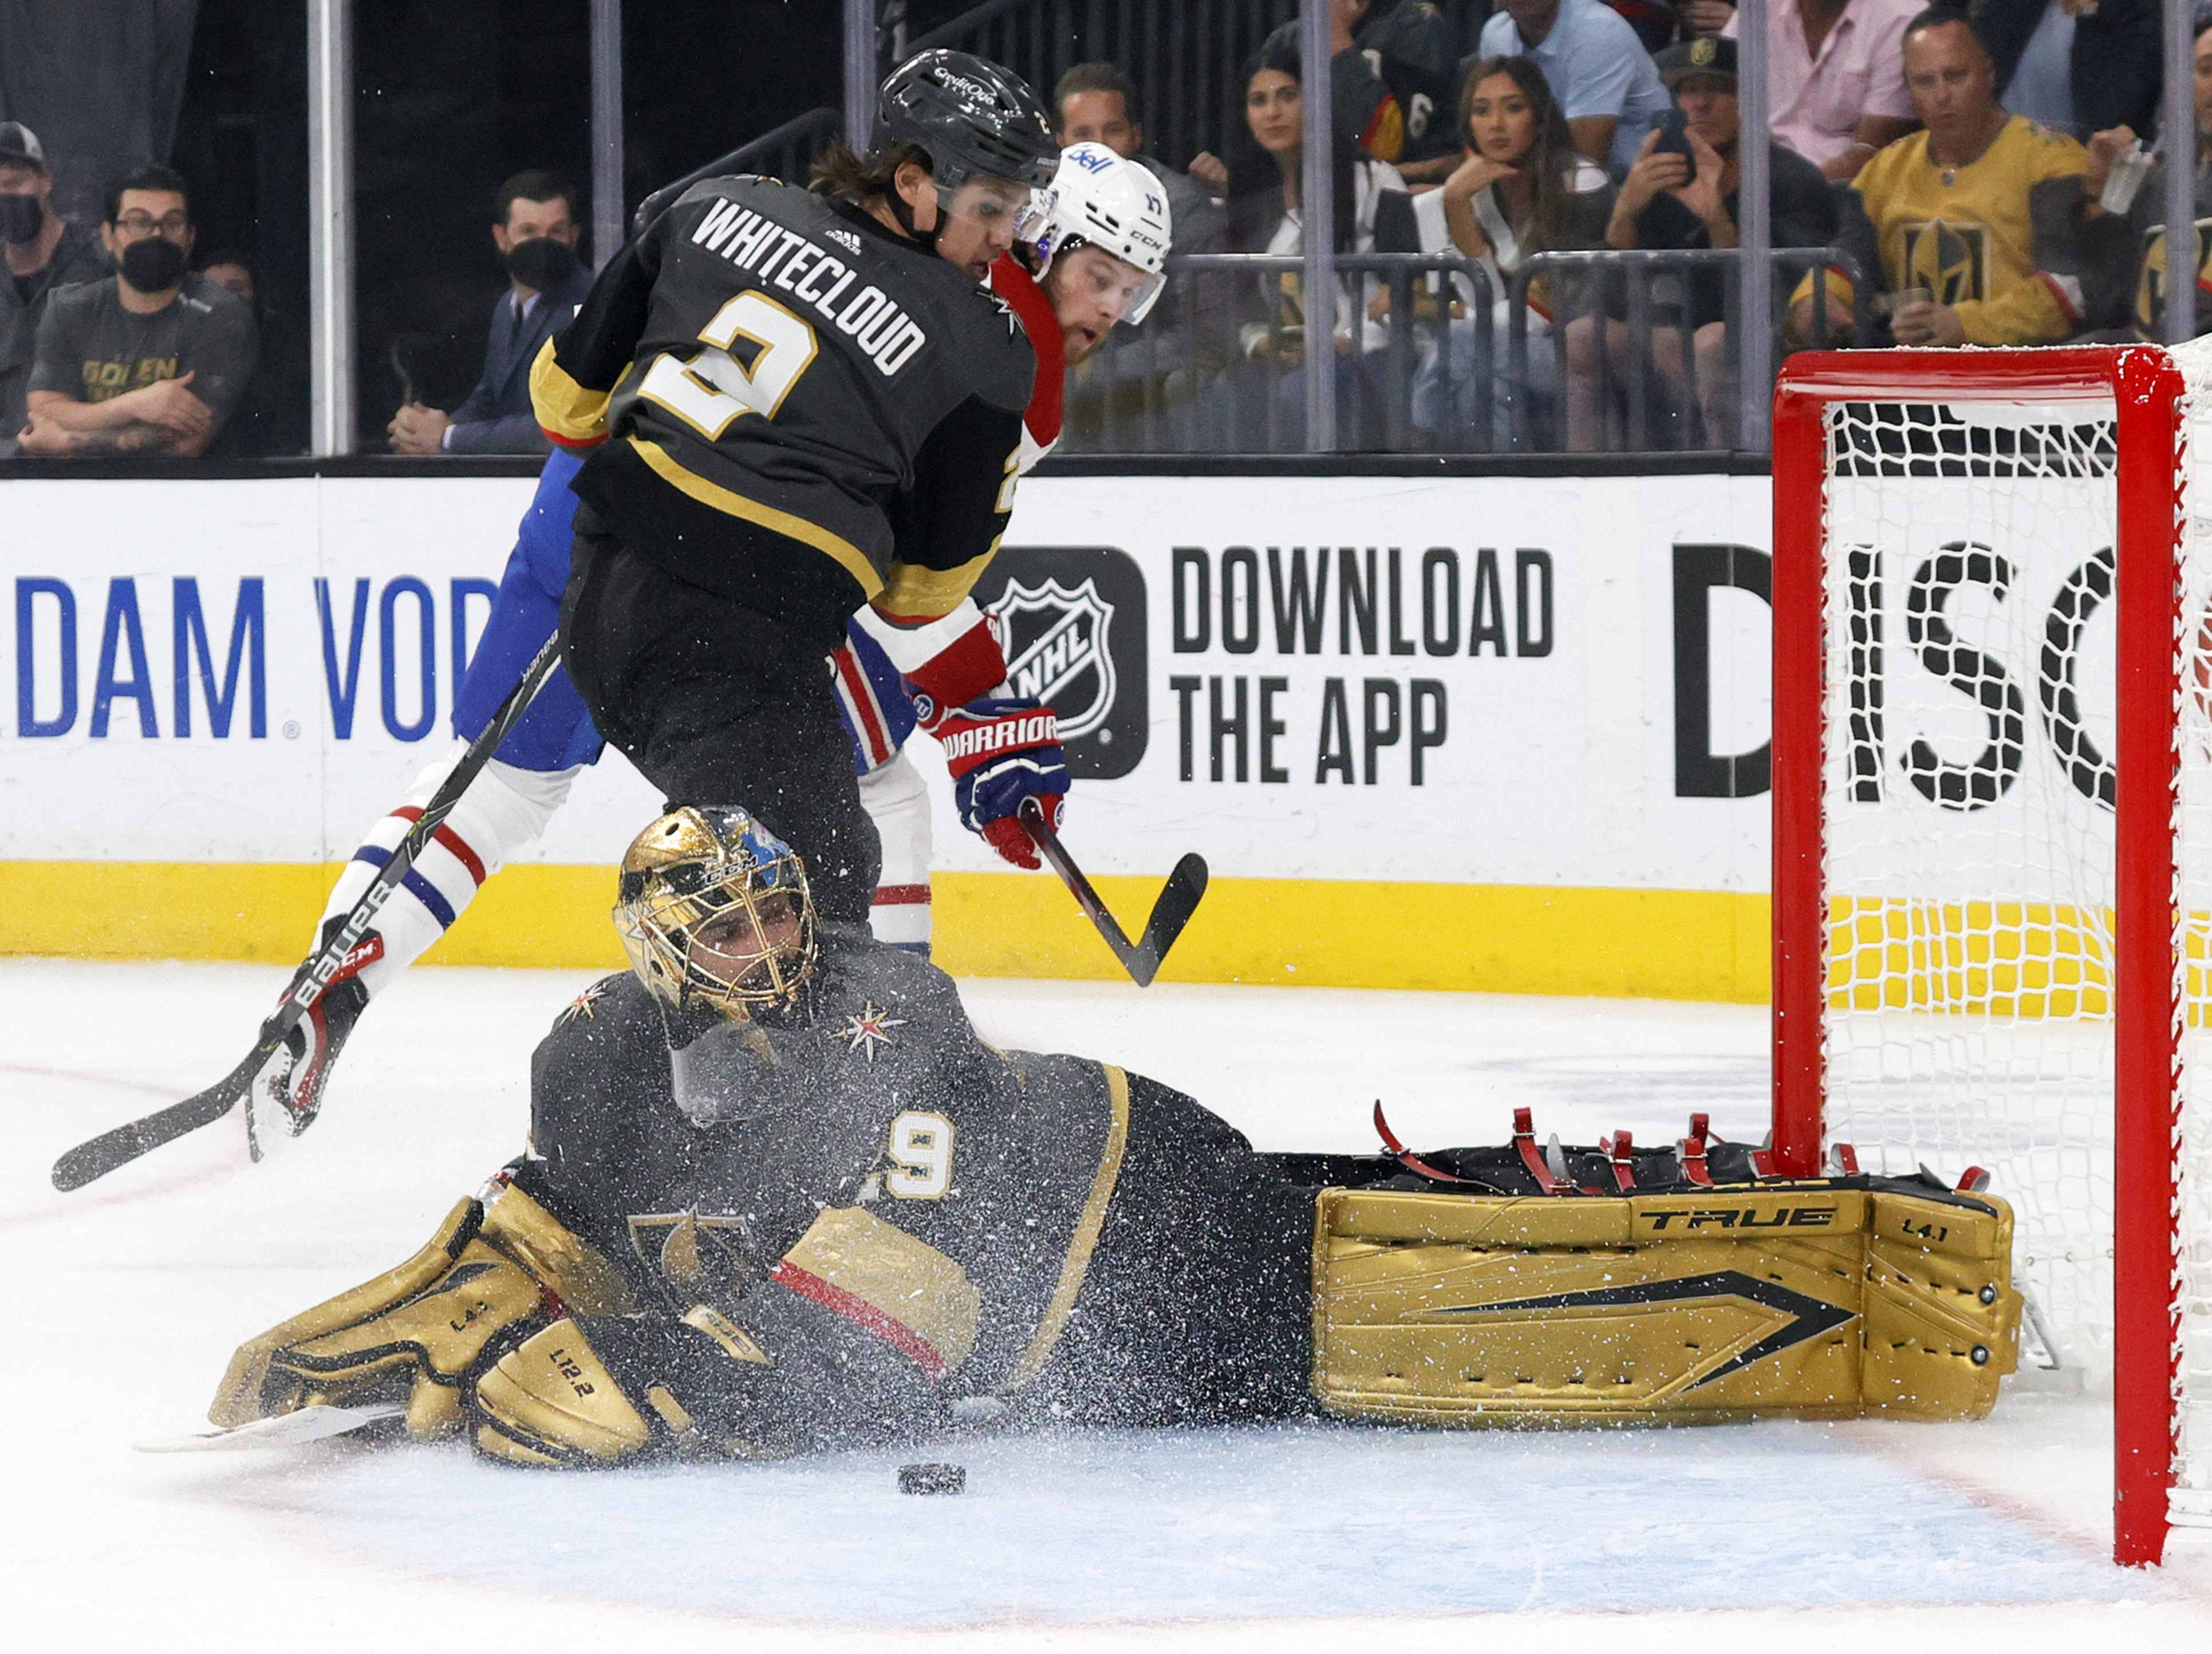 The puck gets away from Marc-Andre Fleury #29 of the Vegas Golden Knights after he made a save against Josh Anderson #17 of the Montreal Canadiens as Zach Whitecloud #2 of the Golden Knights defends in the first period in Game 5 of the Stanley Cup Semifinals of the 2021 Stanley Cup Playoffs at T-Mobile Arena on June 22, 2021 in Las Vegas, Nevada.